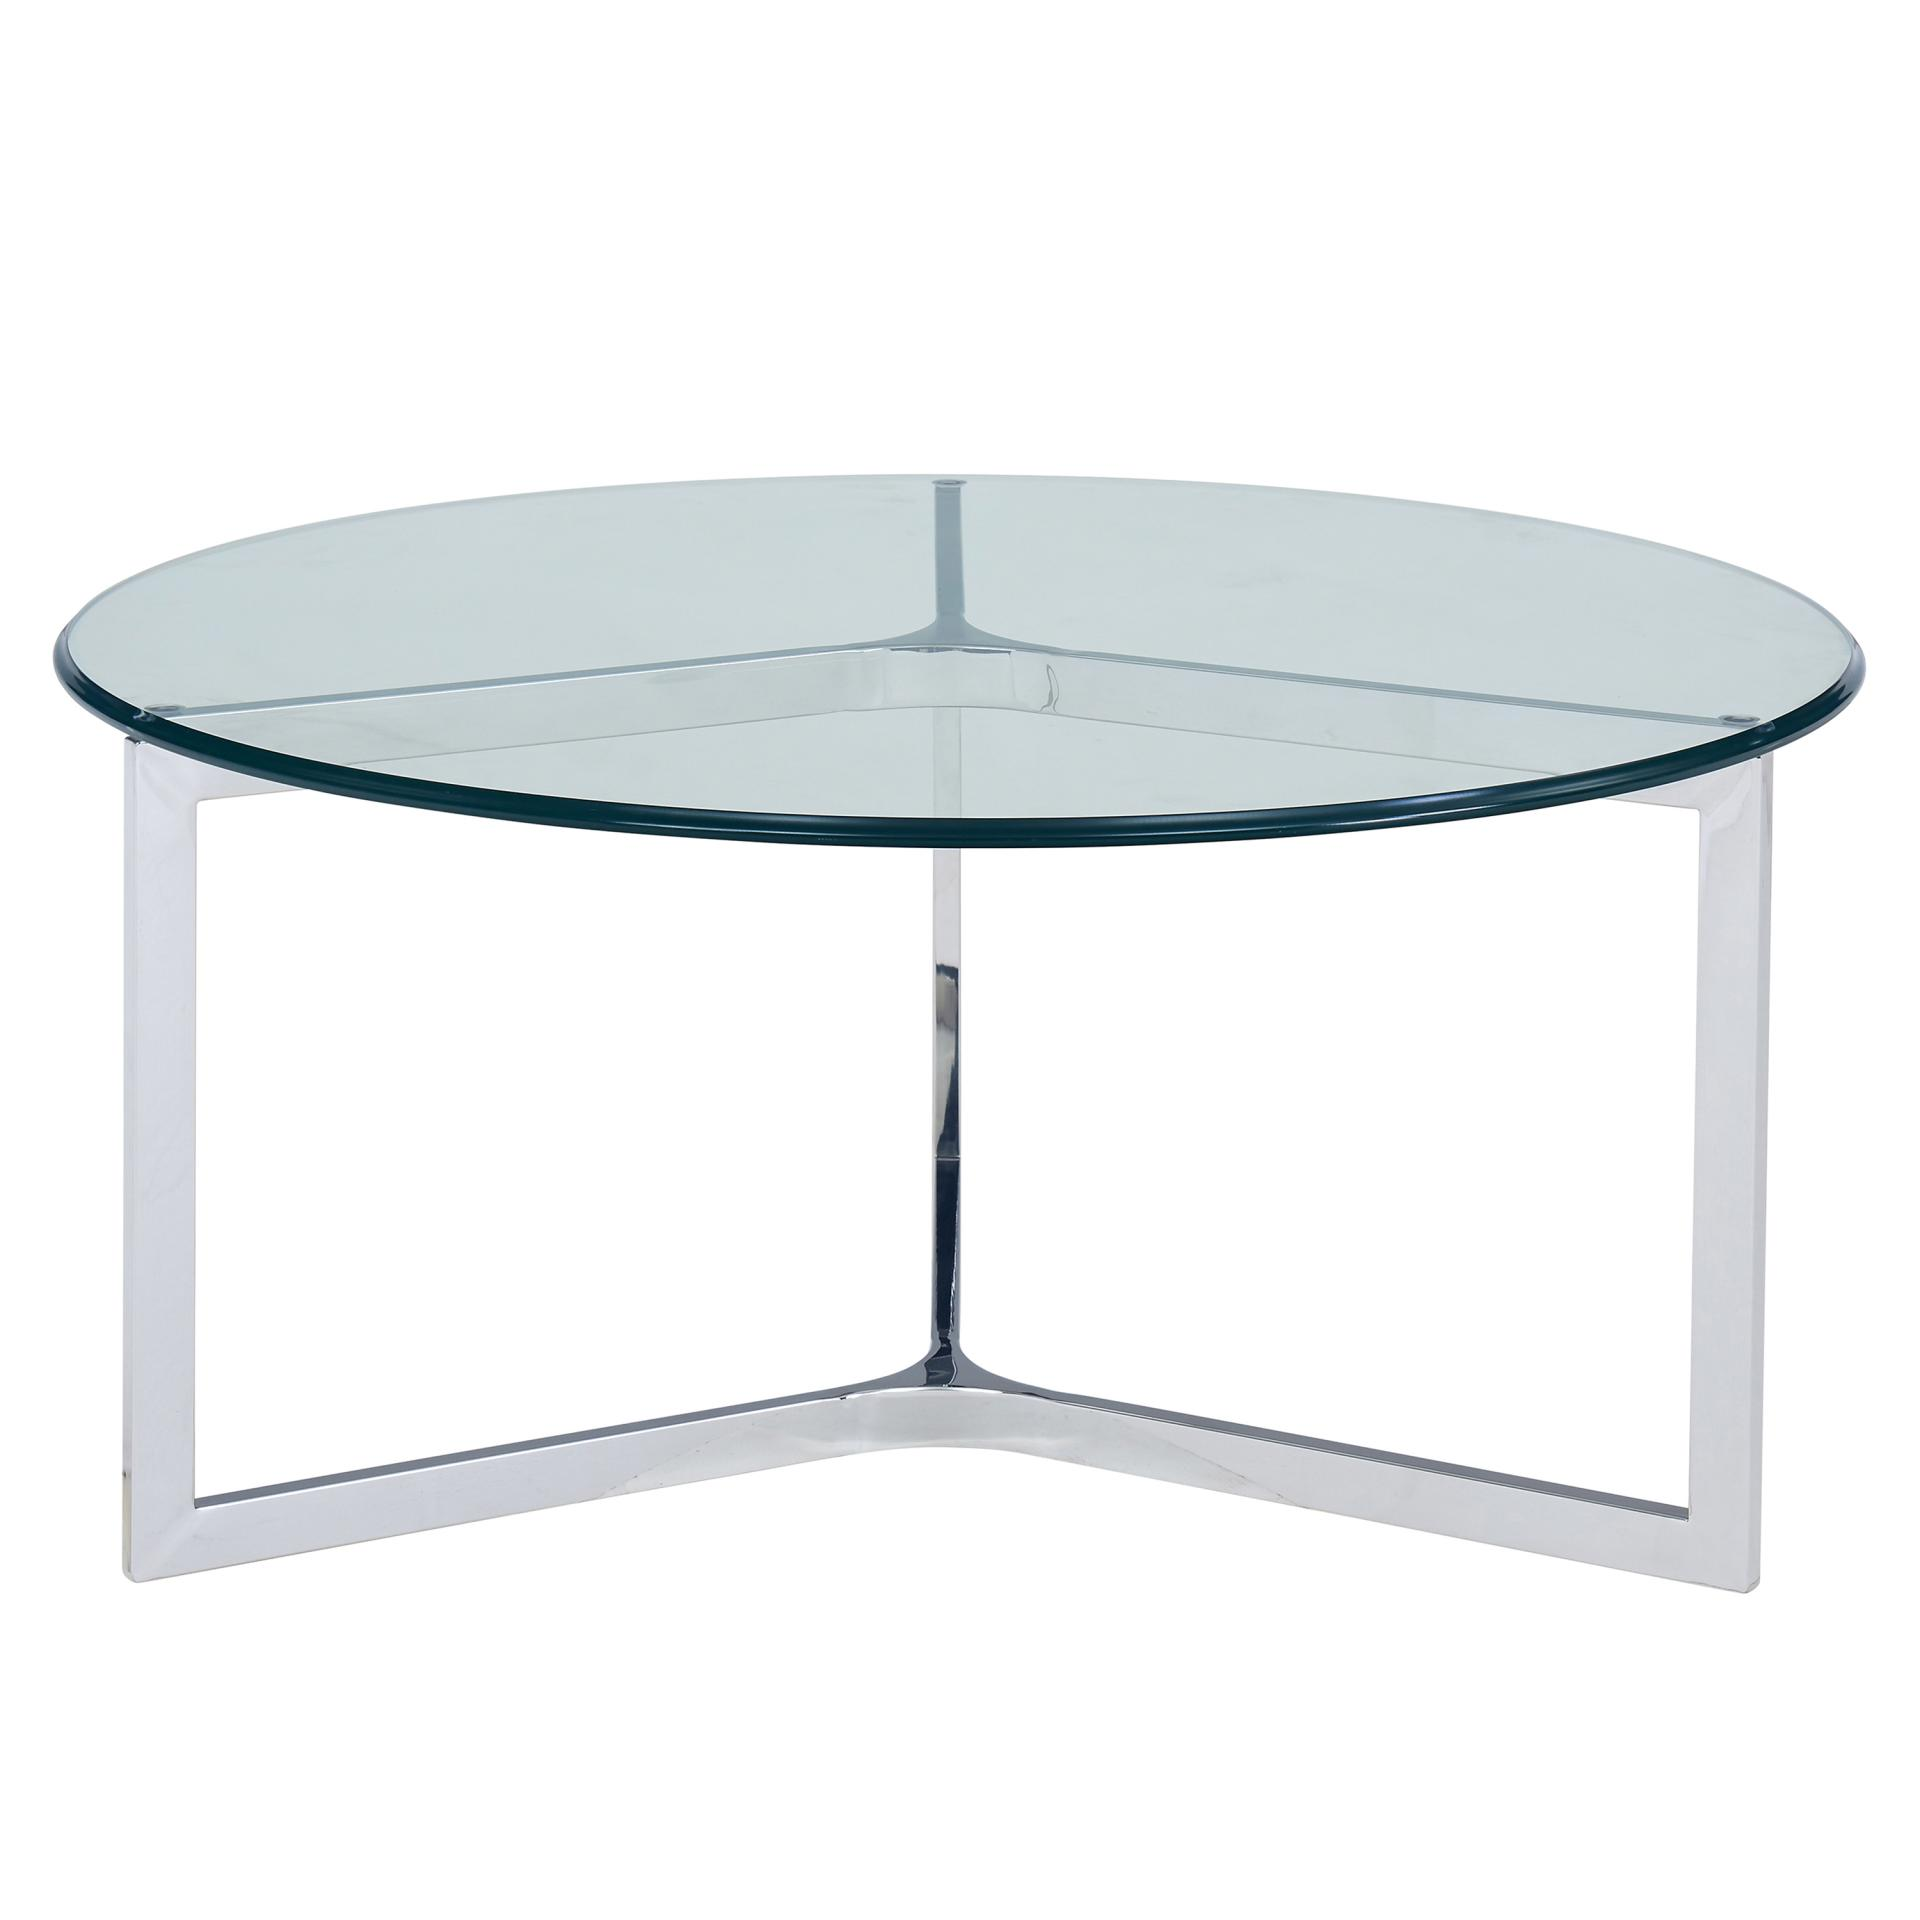 Monza Round Coffee Table Glass Top, Stainless Steel/6000009 SS